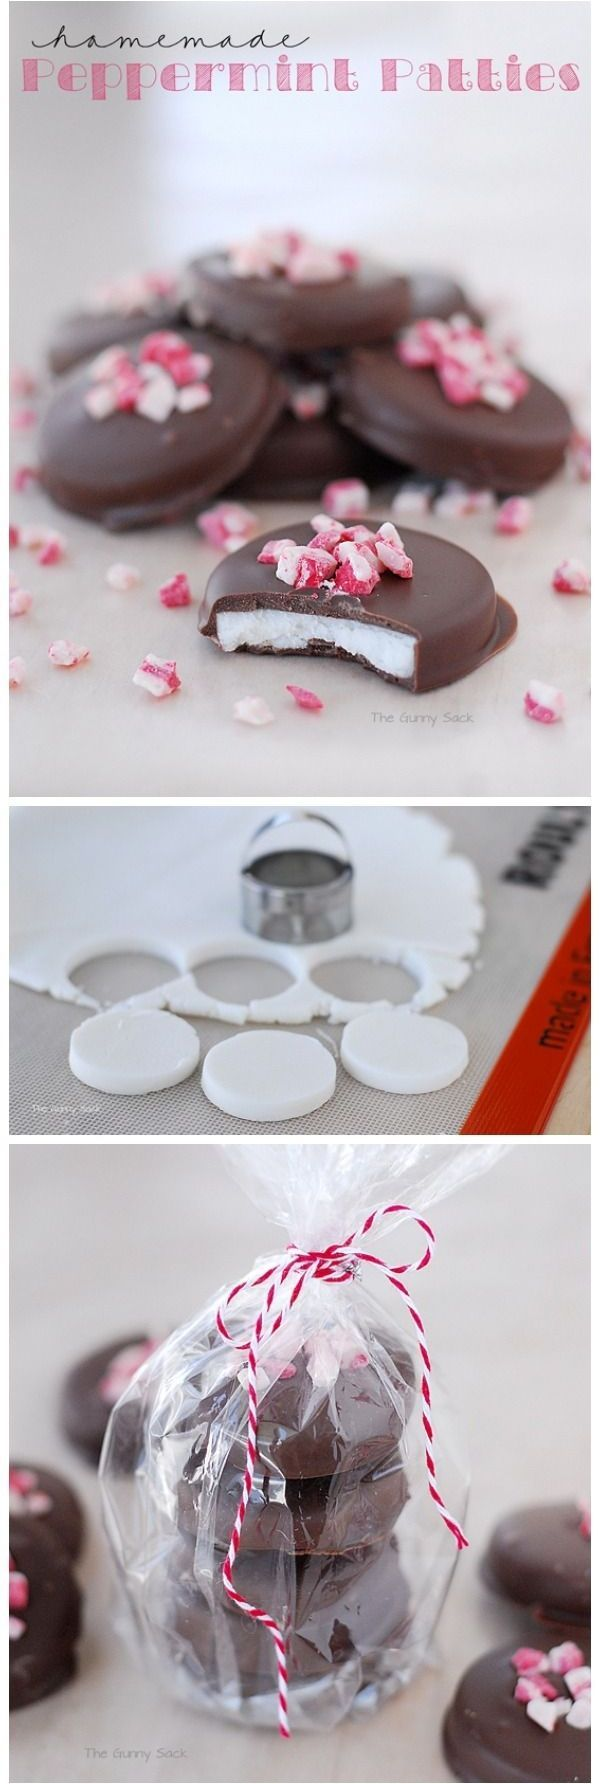 Never Buy Candy Again: Here Are 37 Diy Versions You Can Make at Home ...